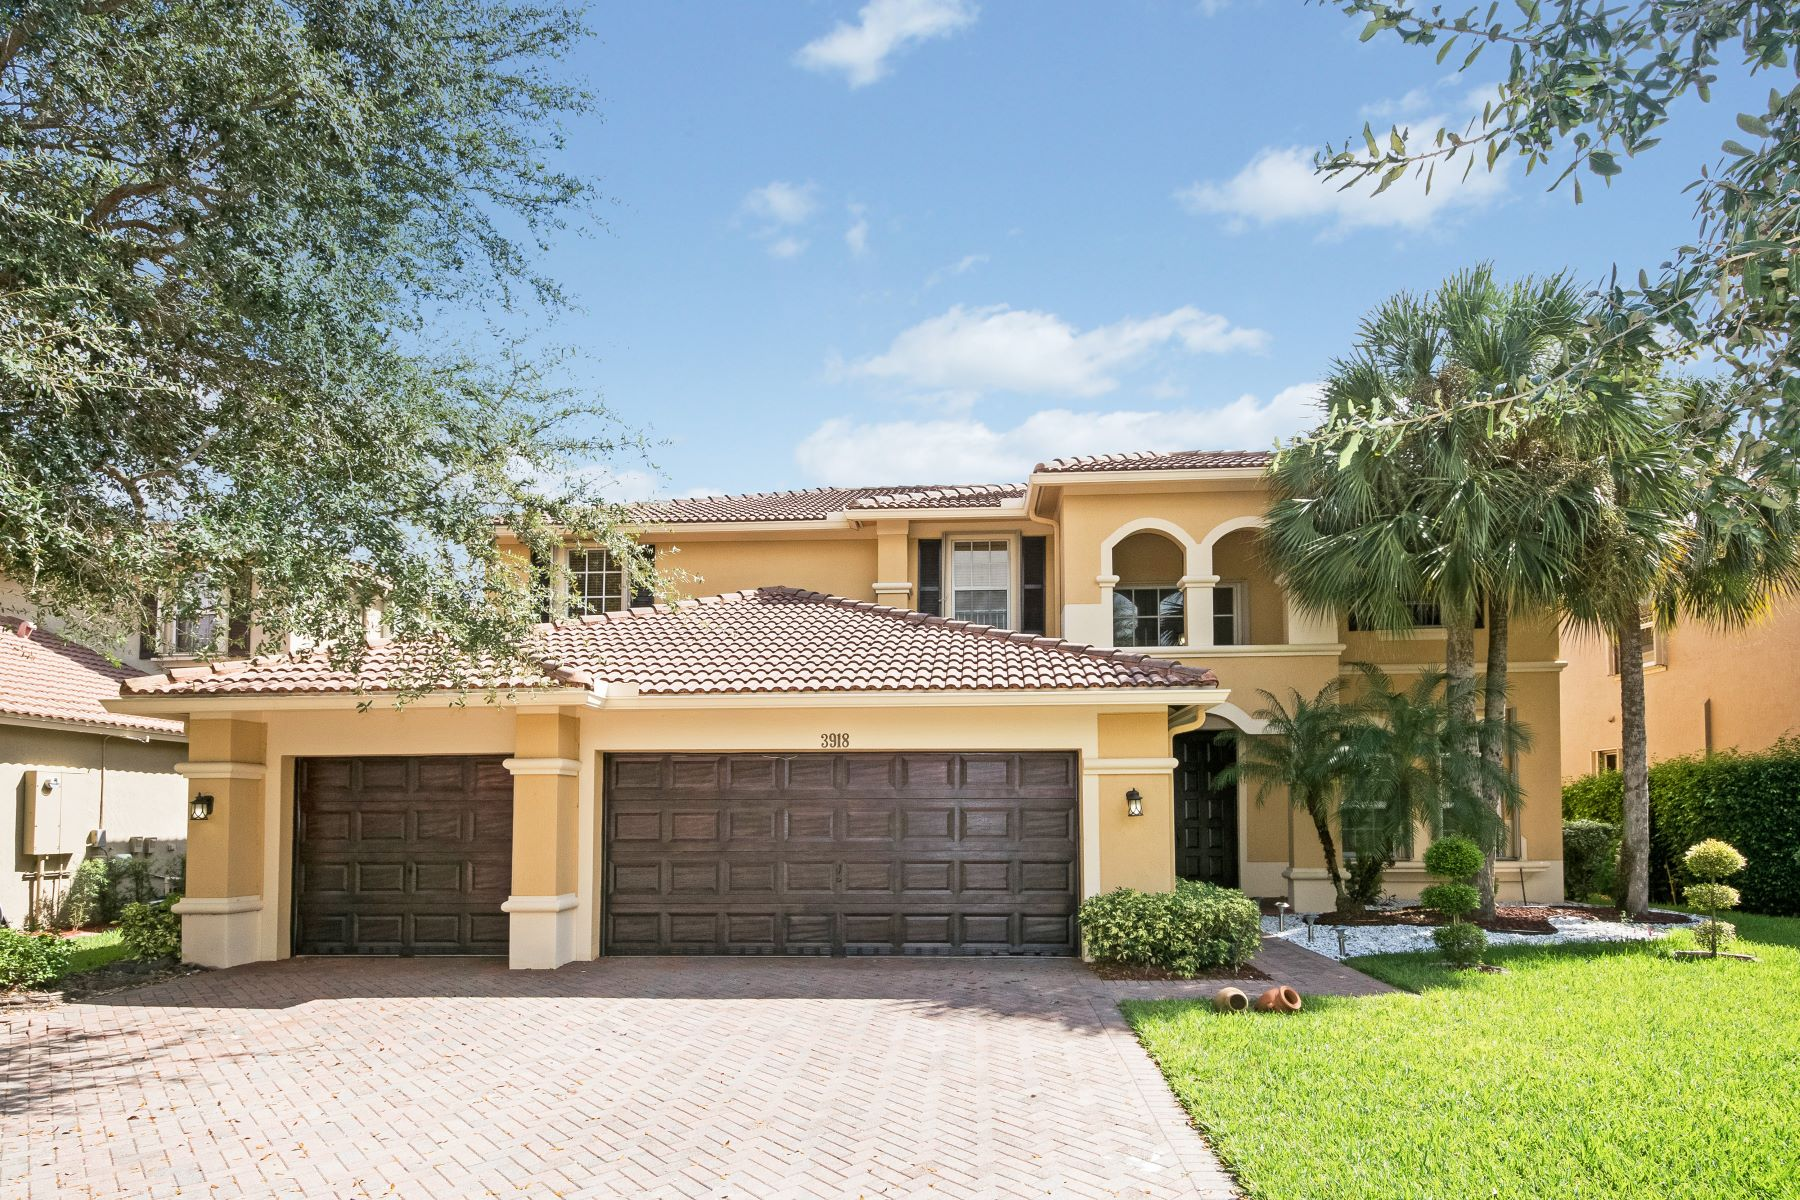 Single Family Homes for Sale at 3918 W Hibiscus St Weston, Florida 33332 United States